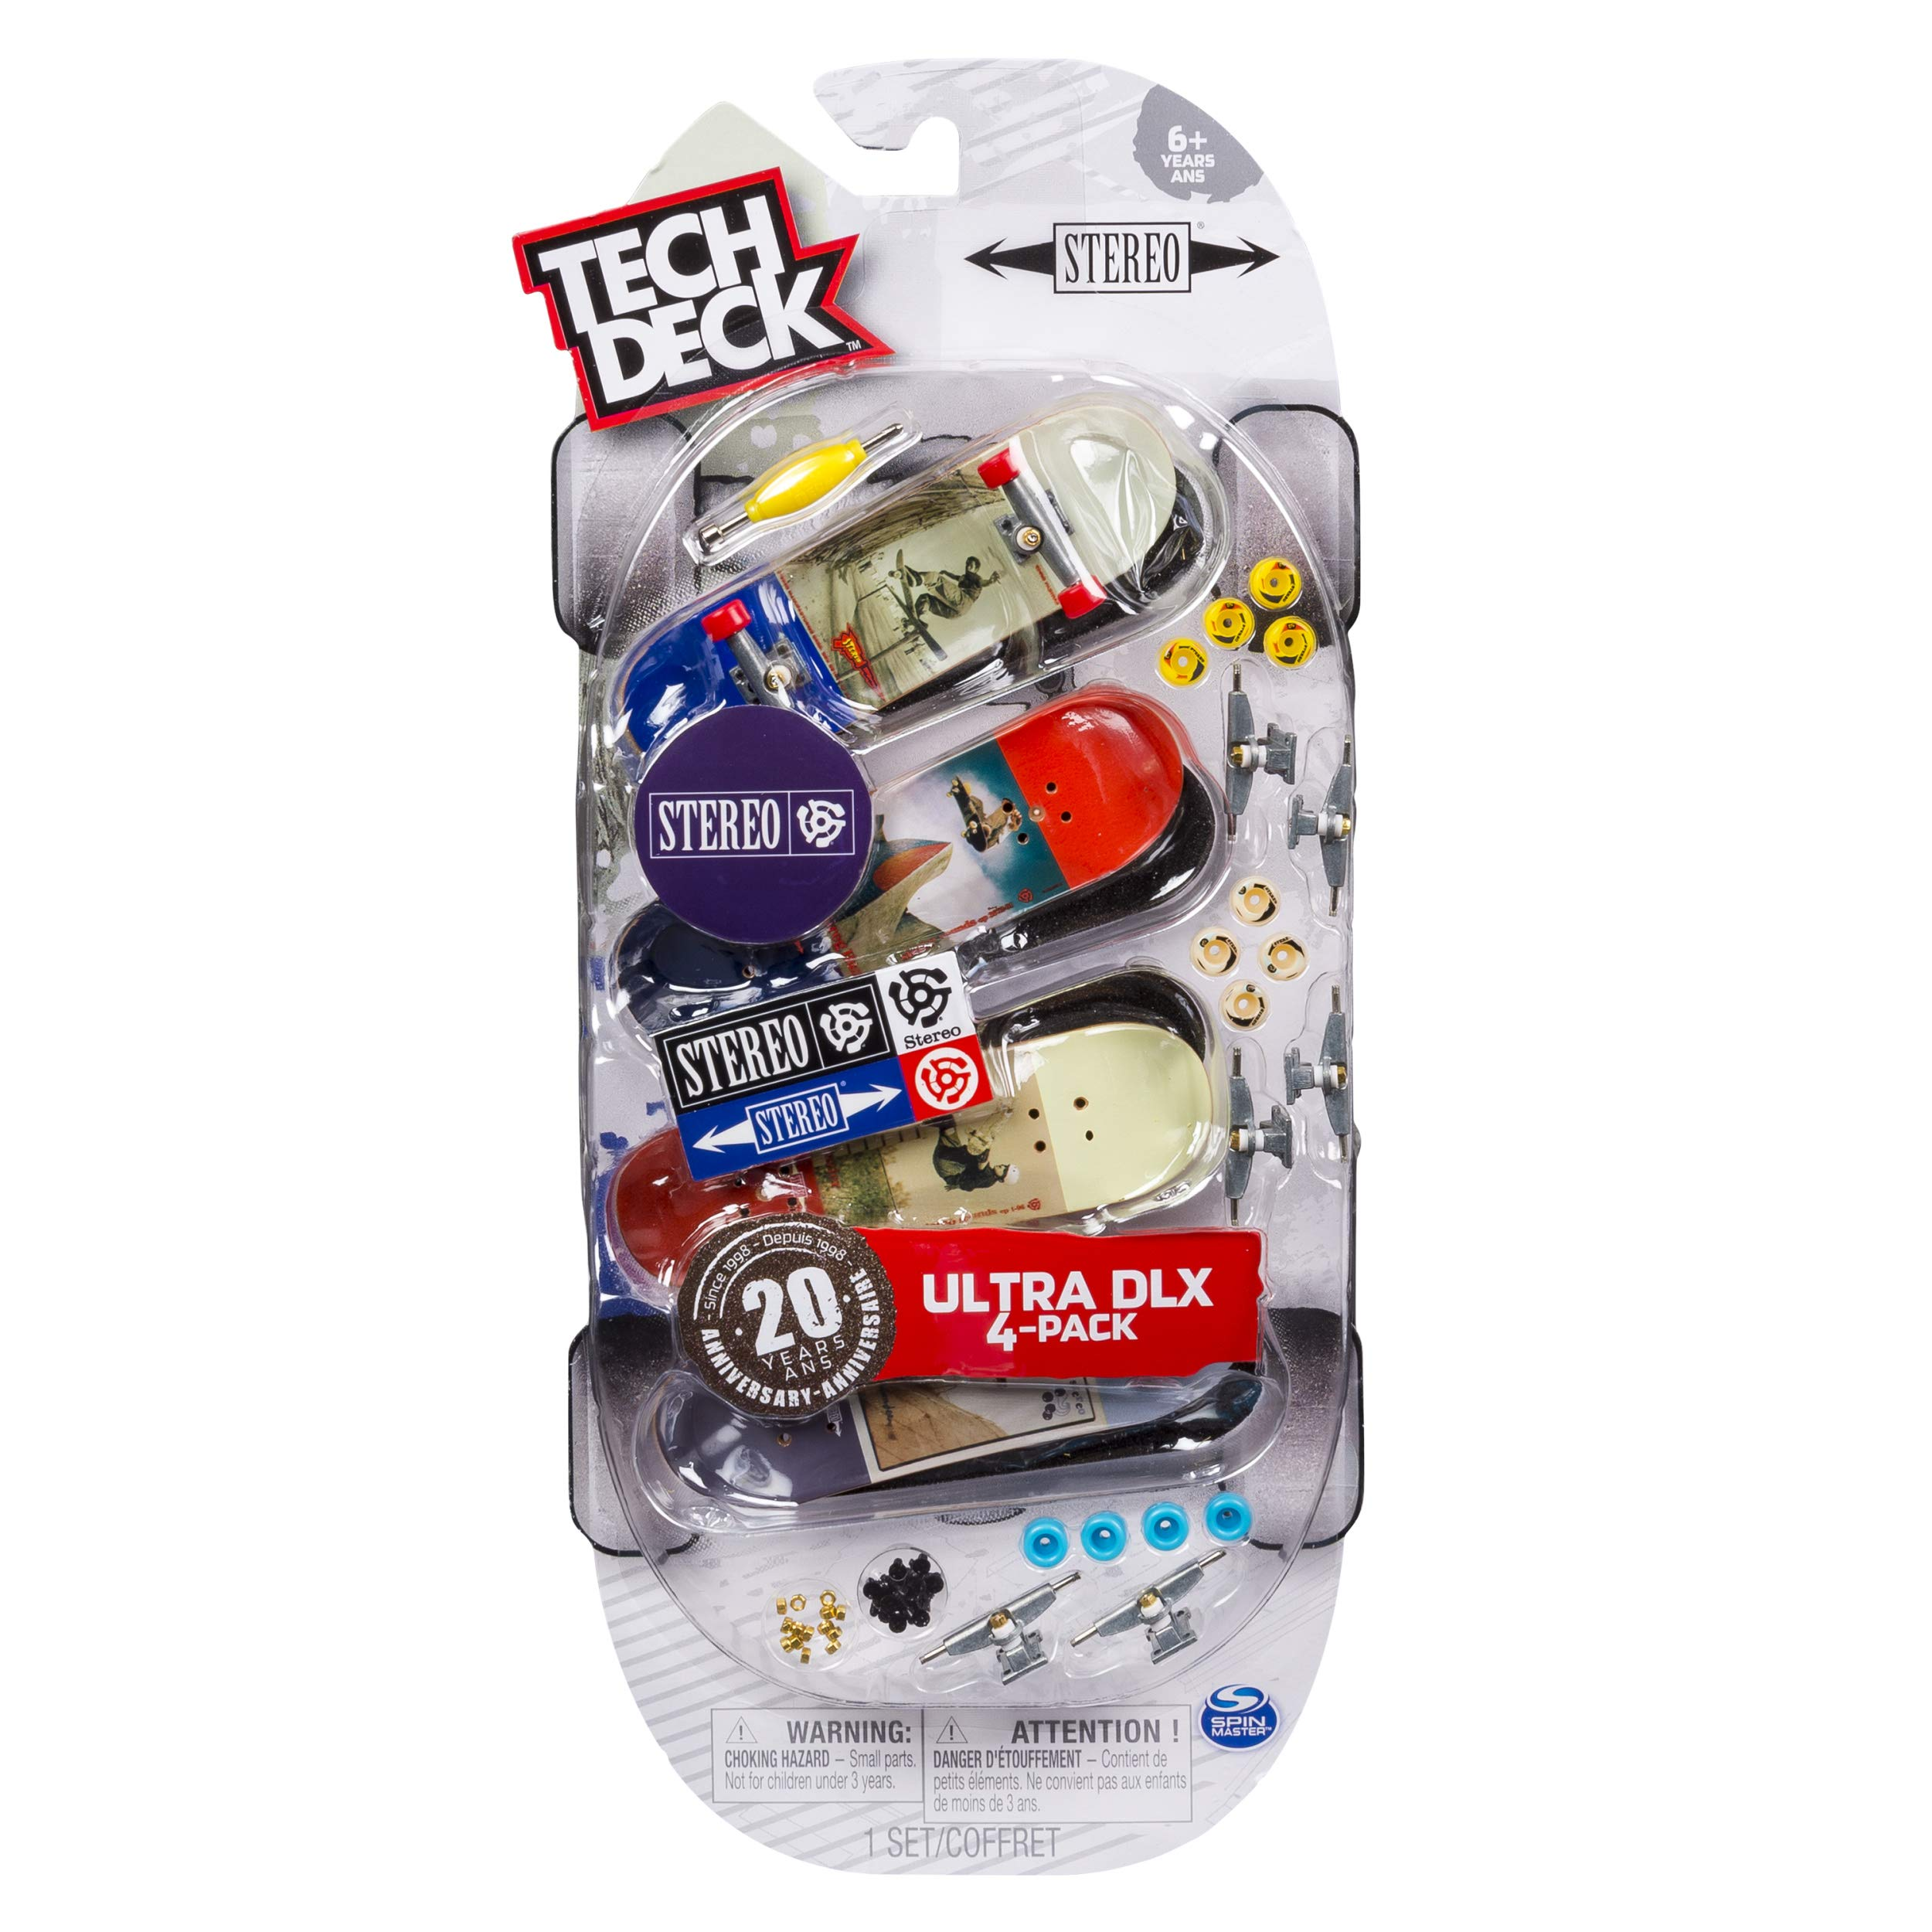 Tech Deck Ultra DLX 4 Pack 96mm Fingerboards - Stereo 20th Anniversary Special Edition by Tech Deck